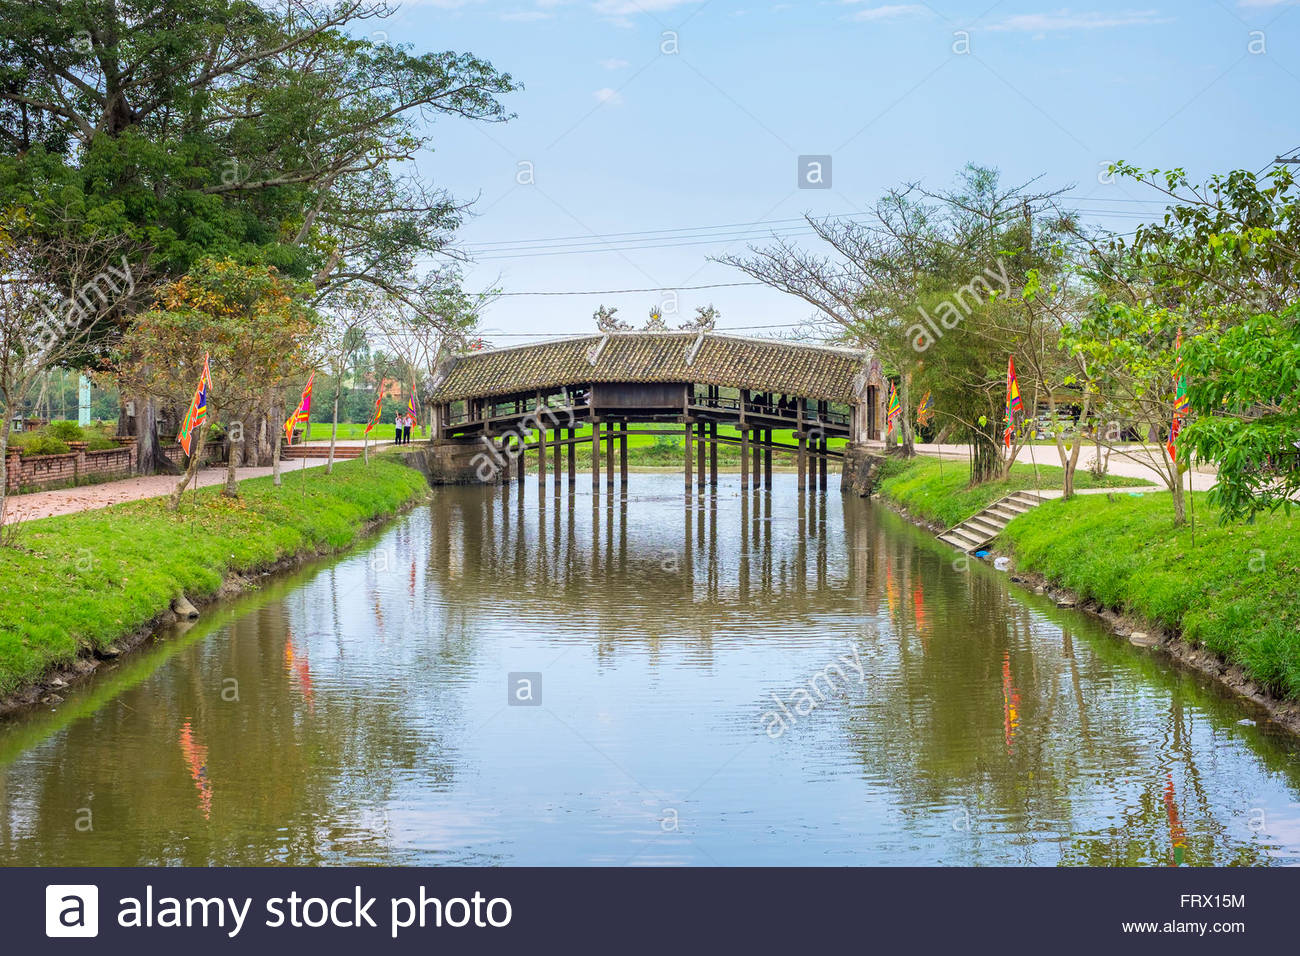 Thanh Toan Bridge, ancient Japanese bridge in Thuy Thanh village, Thua Thien-Hue Province, Vietnam - Stock Image